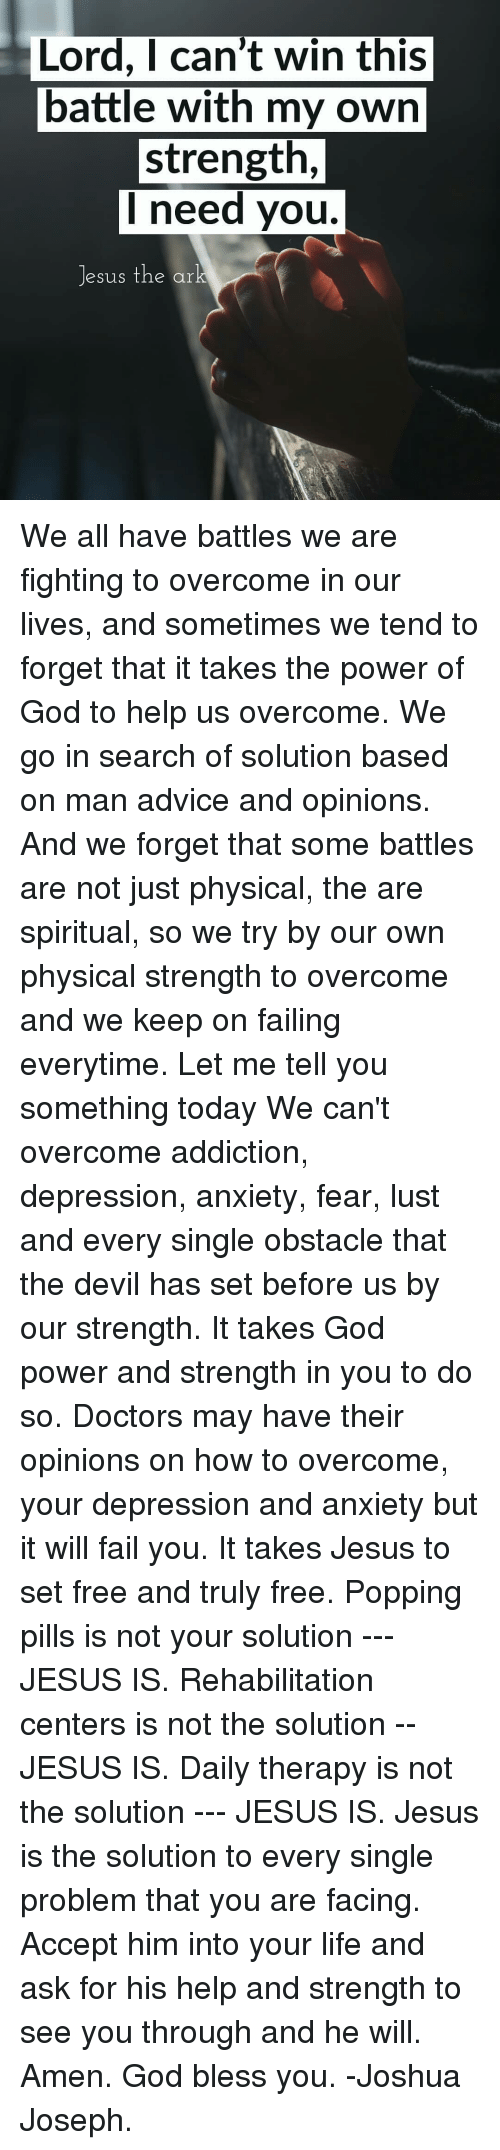 Depression And Anxiety: Lord, I can't win this  battle with my own  strength,  I need you.  Jesus the ar We all have battles we are fighting to overcome in our lives, and sometimes we tend to forget that it takes the power of God to help us overcome. We go in search of solution based on man advice and opinions. And we forget that some battles are not just physical, the are spiritual, so we try by our own physical strength to overcome and we keep on failing everytime. Let me tell you something today We can't overcome addiction, depression, anxiety, fear, lust and every single obstacle that the devil has set before us by our strength. It takes God power and strength in you to do so. Doctors may have their opinions on how to overcome, your depression and anxiety but it will fail you. It takes Jesus to set free and truly free. Popping pills is not your solution --- JESUS IS. Rehabilitation centers is not the solution -- JESUS IS. Daily therapy is not the solution --- JESUS IS. Jesus is the solution to every single problem that you are facing. Accept him into your life and ask for his help and strength to see you through and he will. Amen. God bless you. -Joshua Joseph.